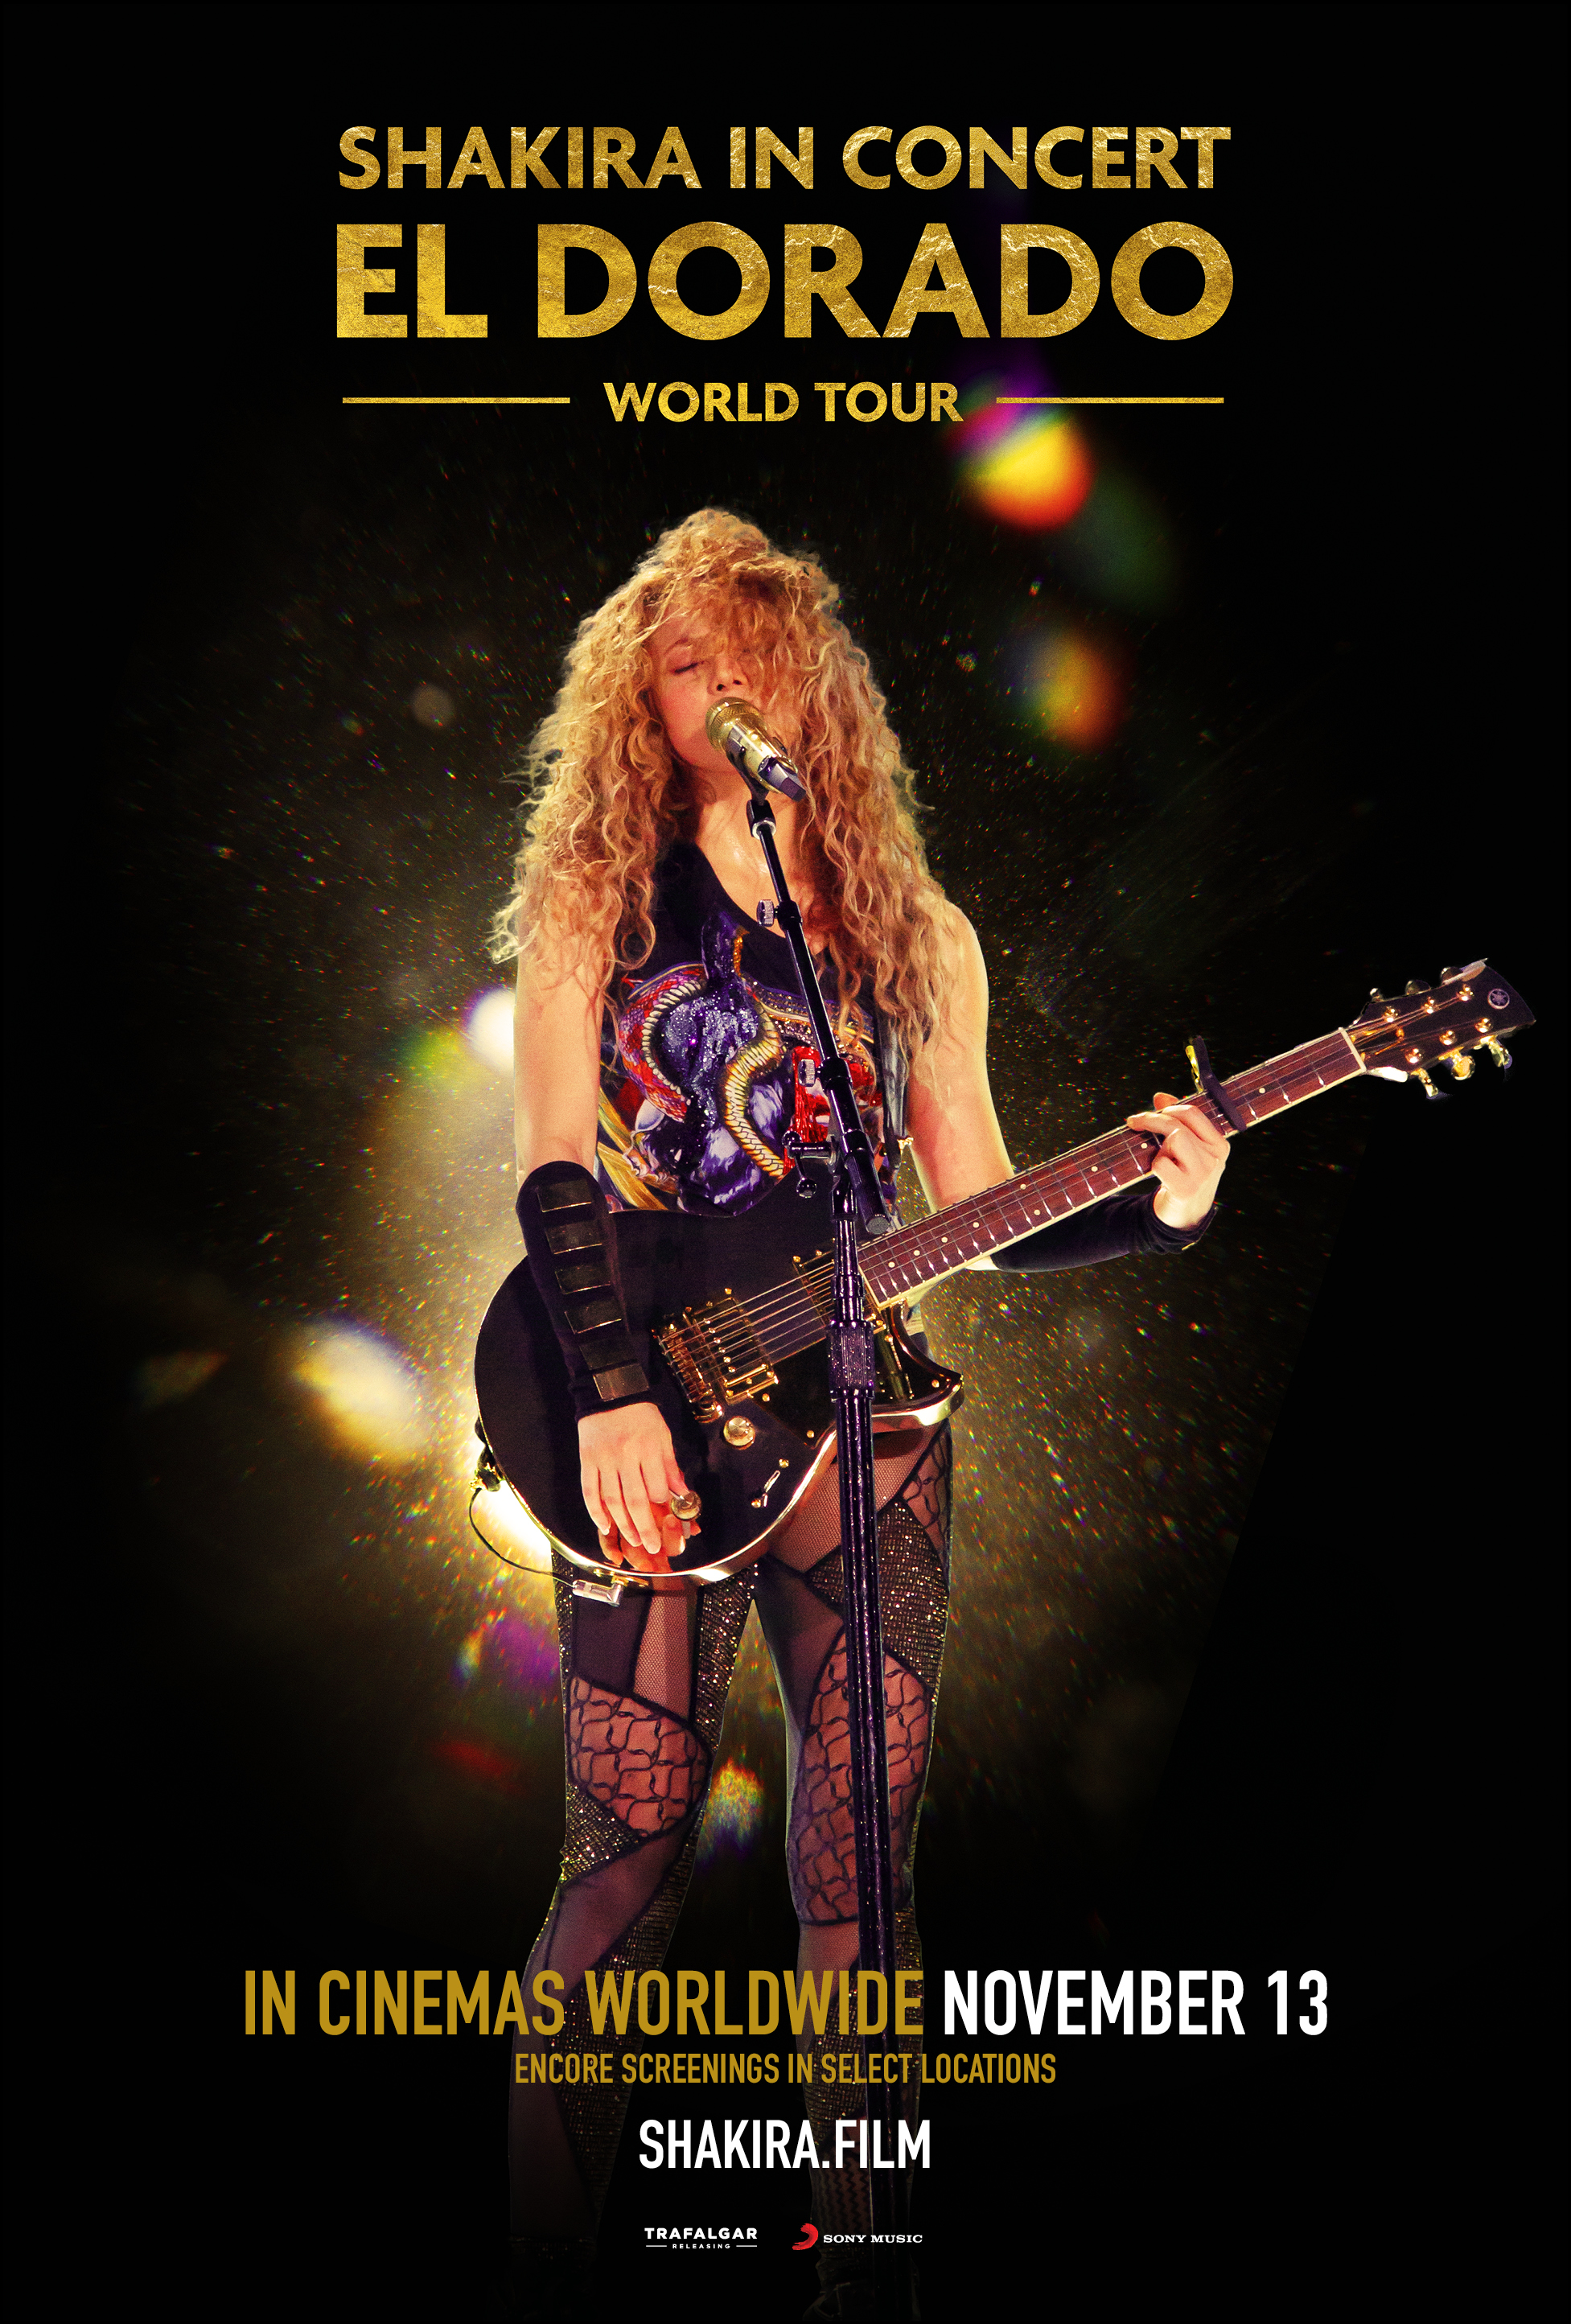 Image 1 of the Shakira In Concert: El Dorado World Tour gallery